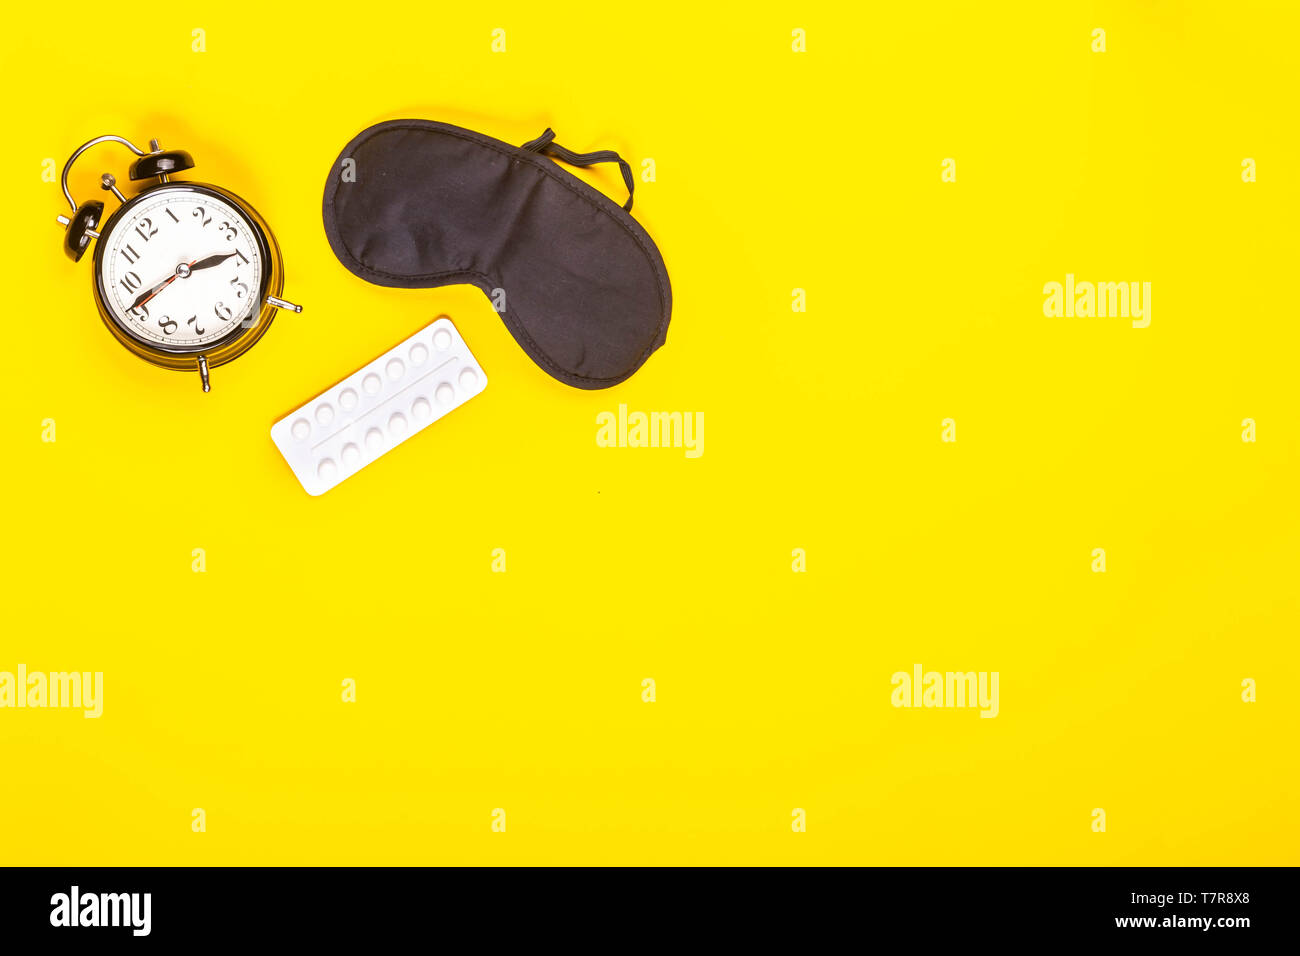 Sleep concept showing an eye mask, alarm clock and sleeping pills on a yellow background - Stock Image